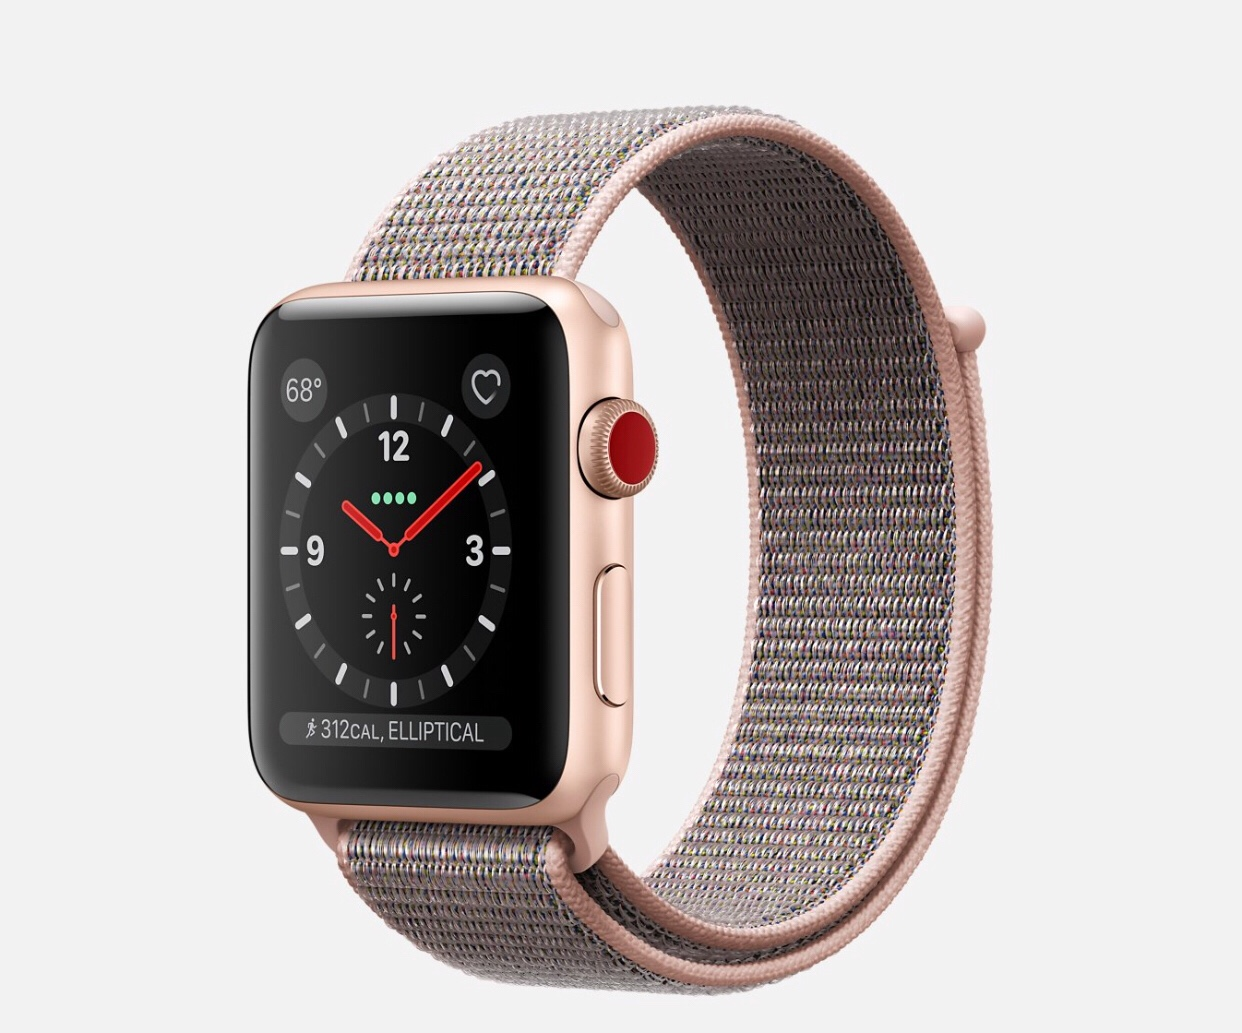 The Apple Watch Has Become Quite the Lifesaver